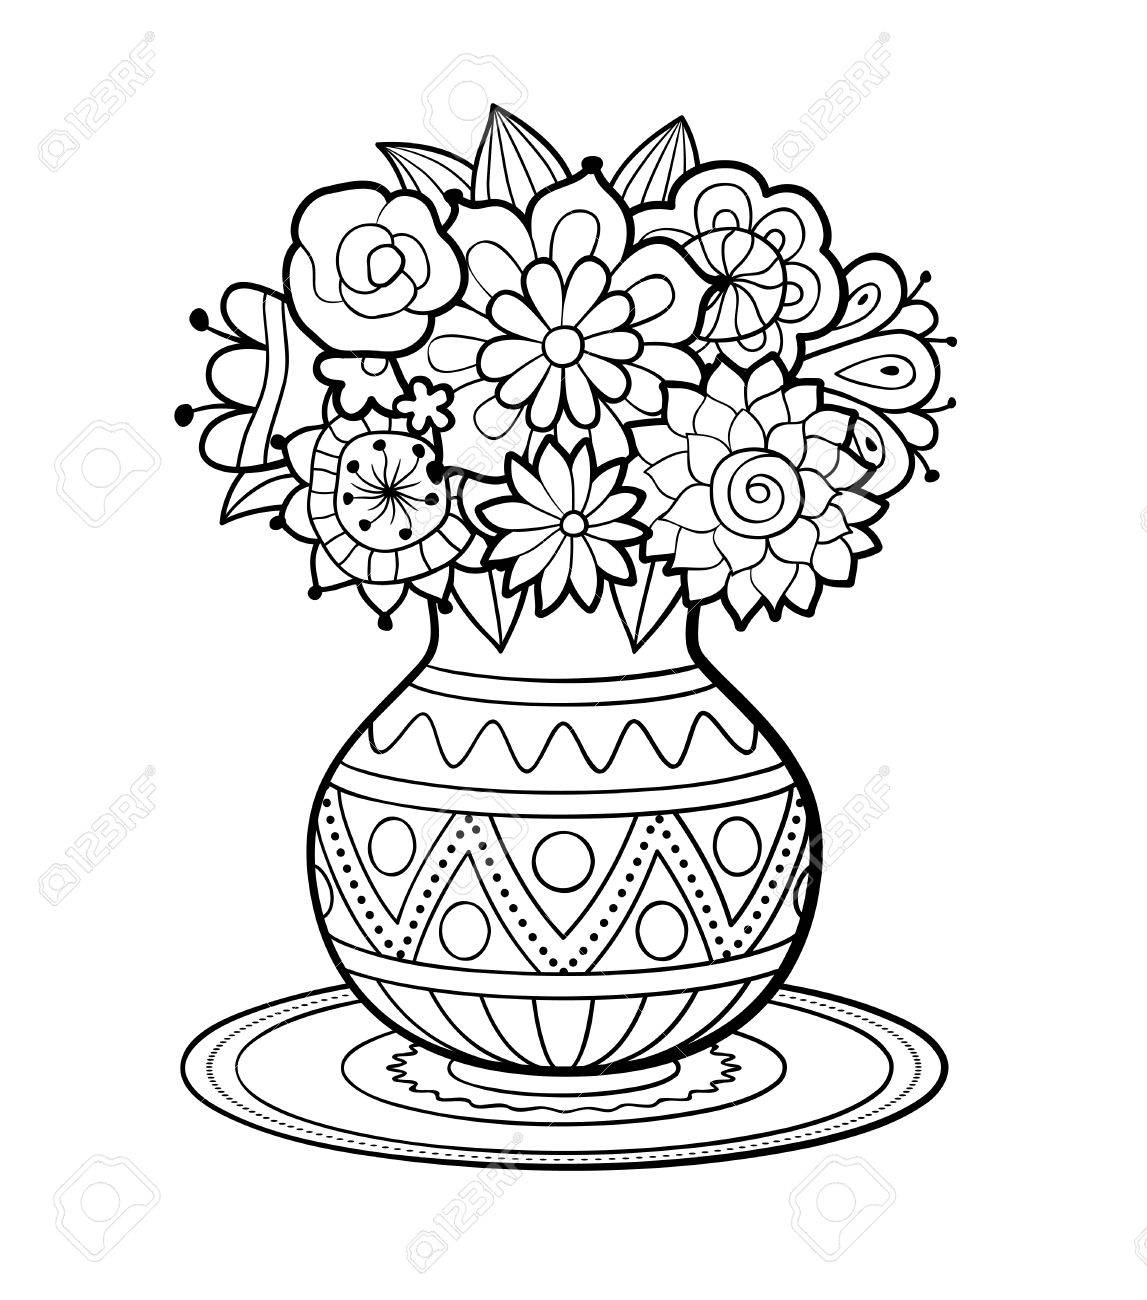 antistress coloring page for adults vase of flowers with geometric ornament standing on round napkin black and white outline vector